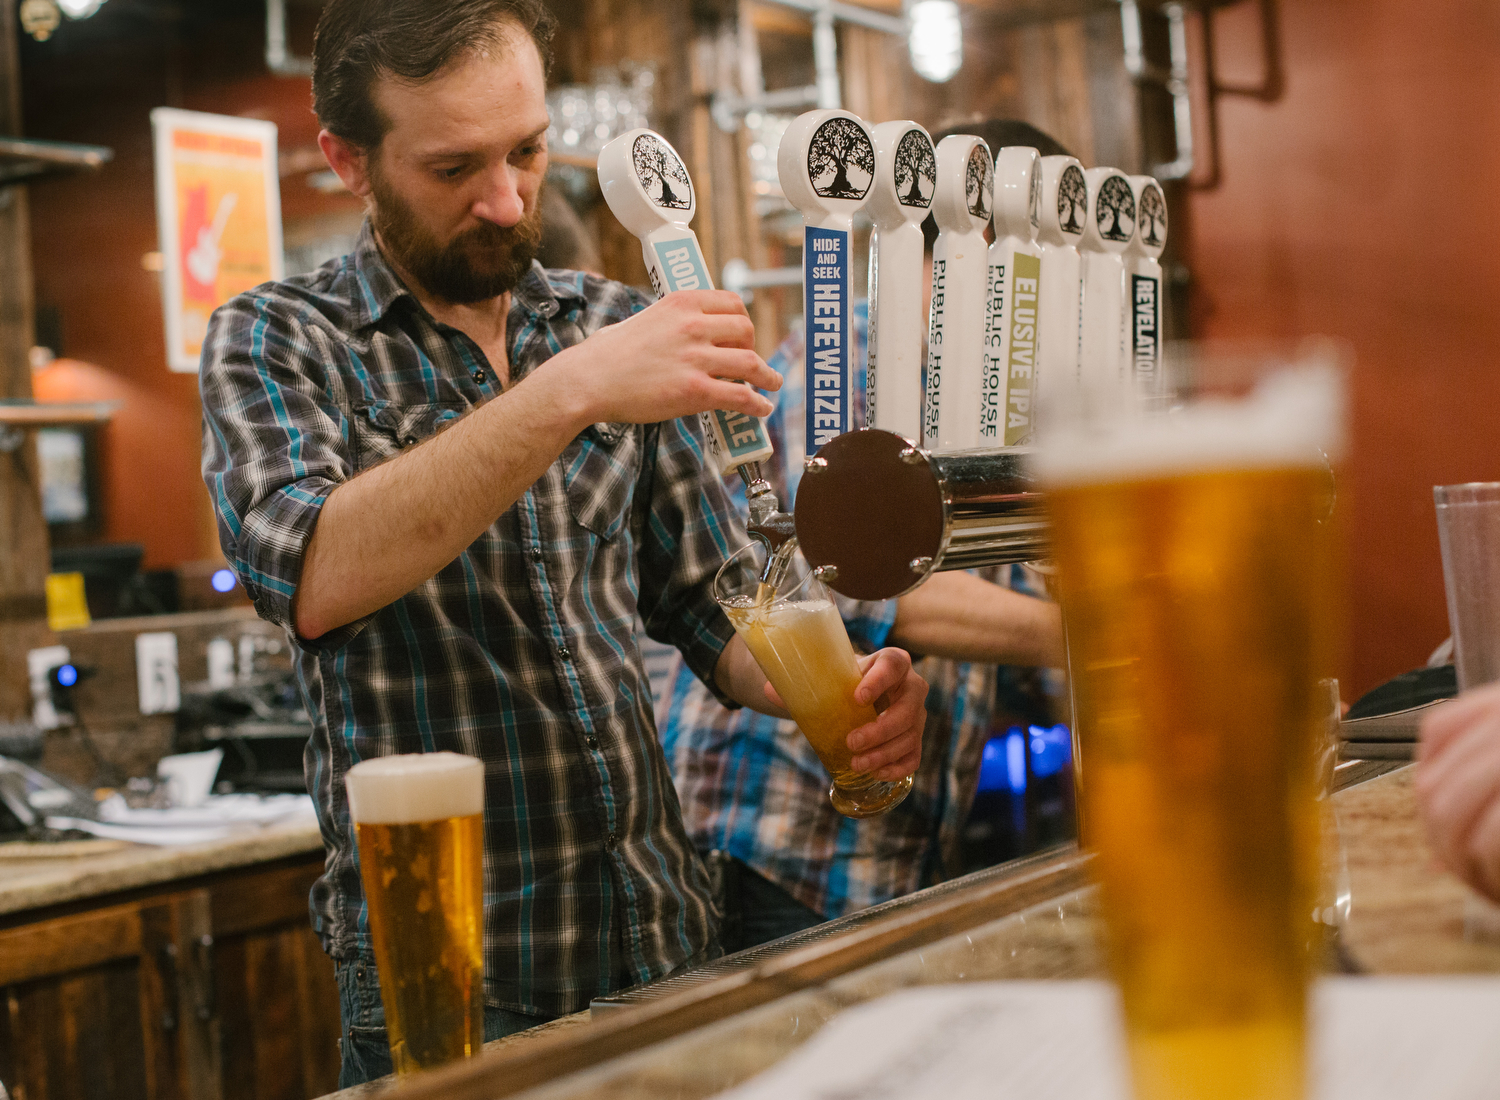 Bartenders pouring craft beer.